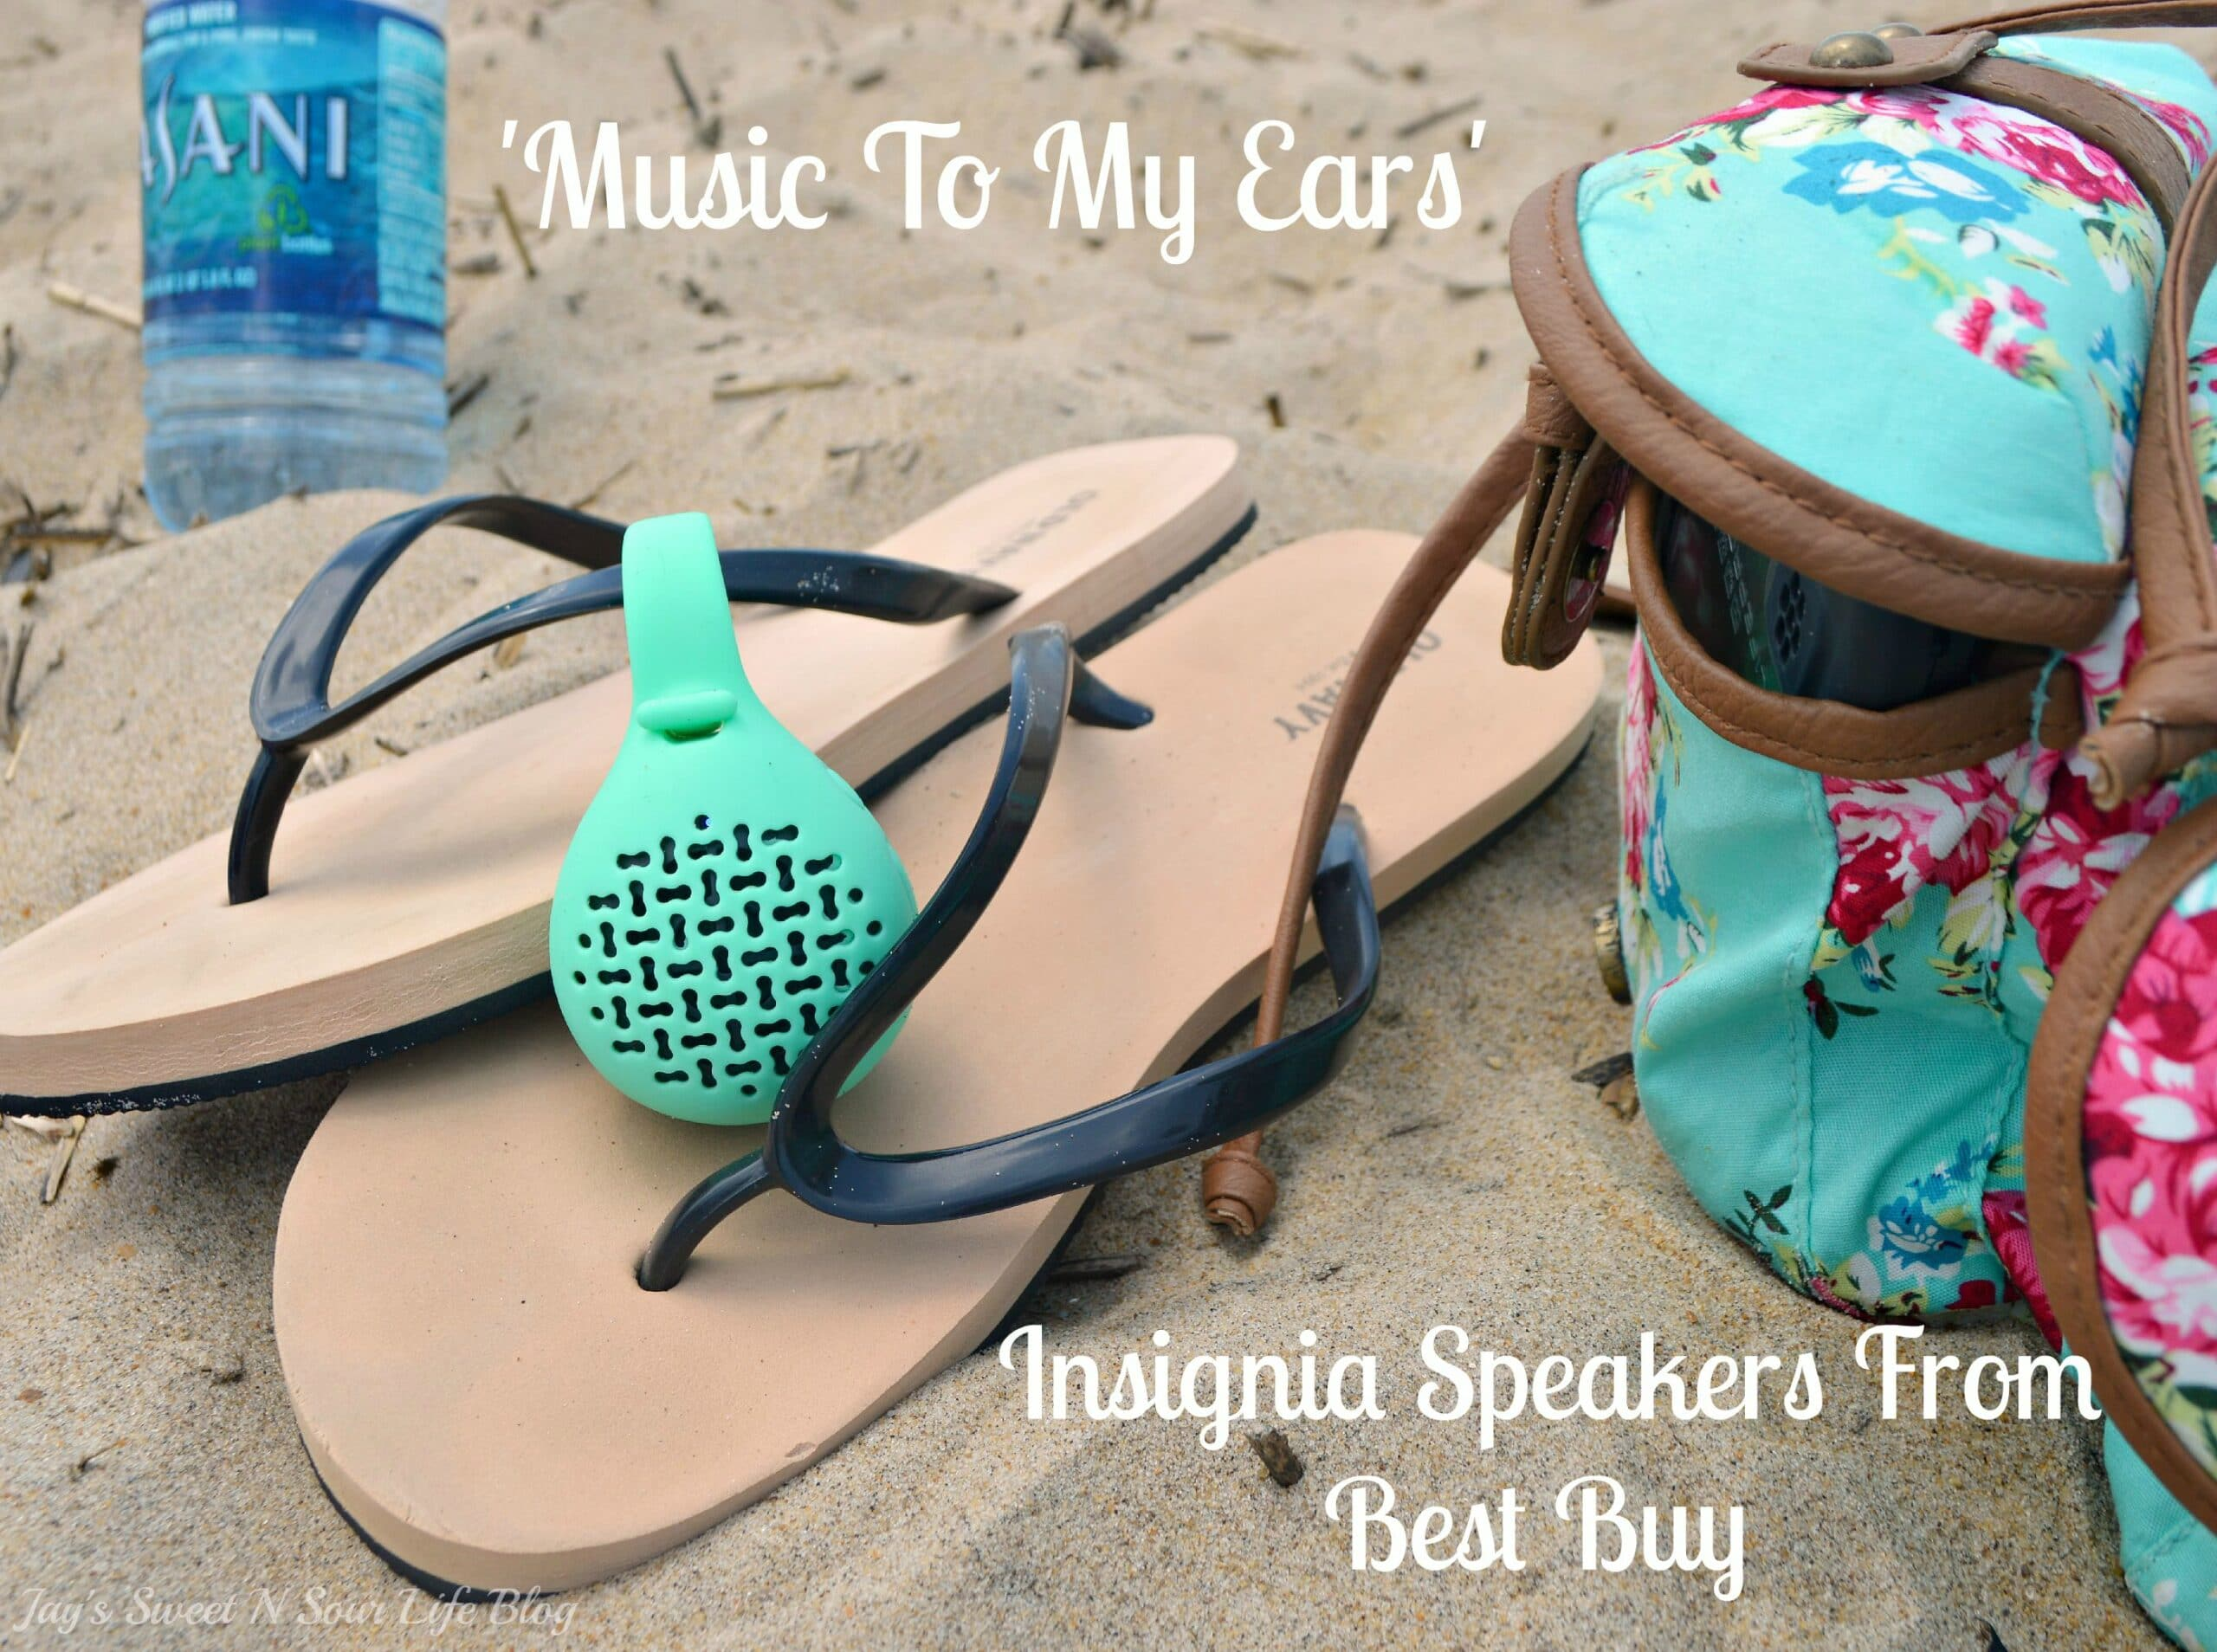 Music To My Ears – Insignia Speakers From Best Buy